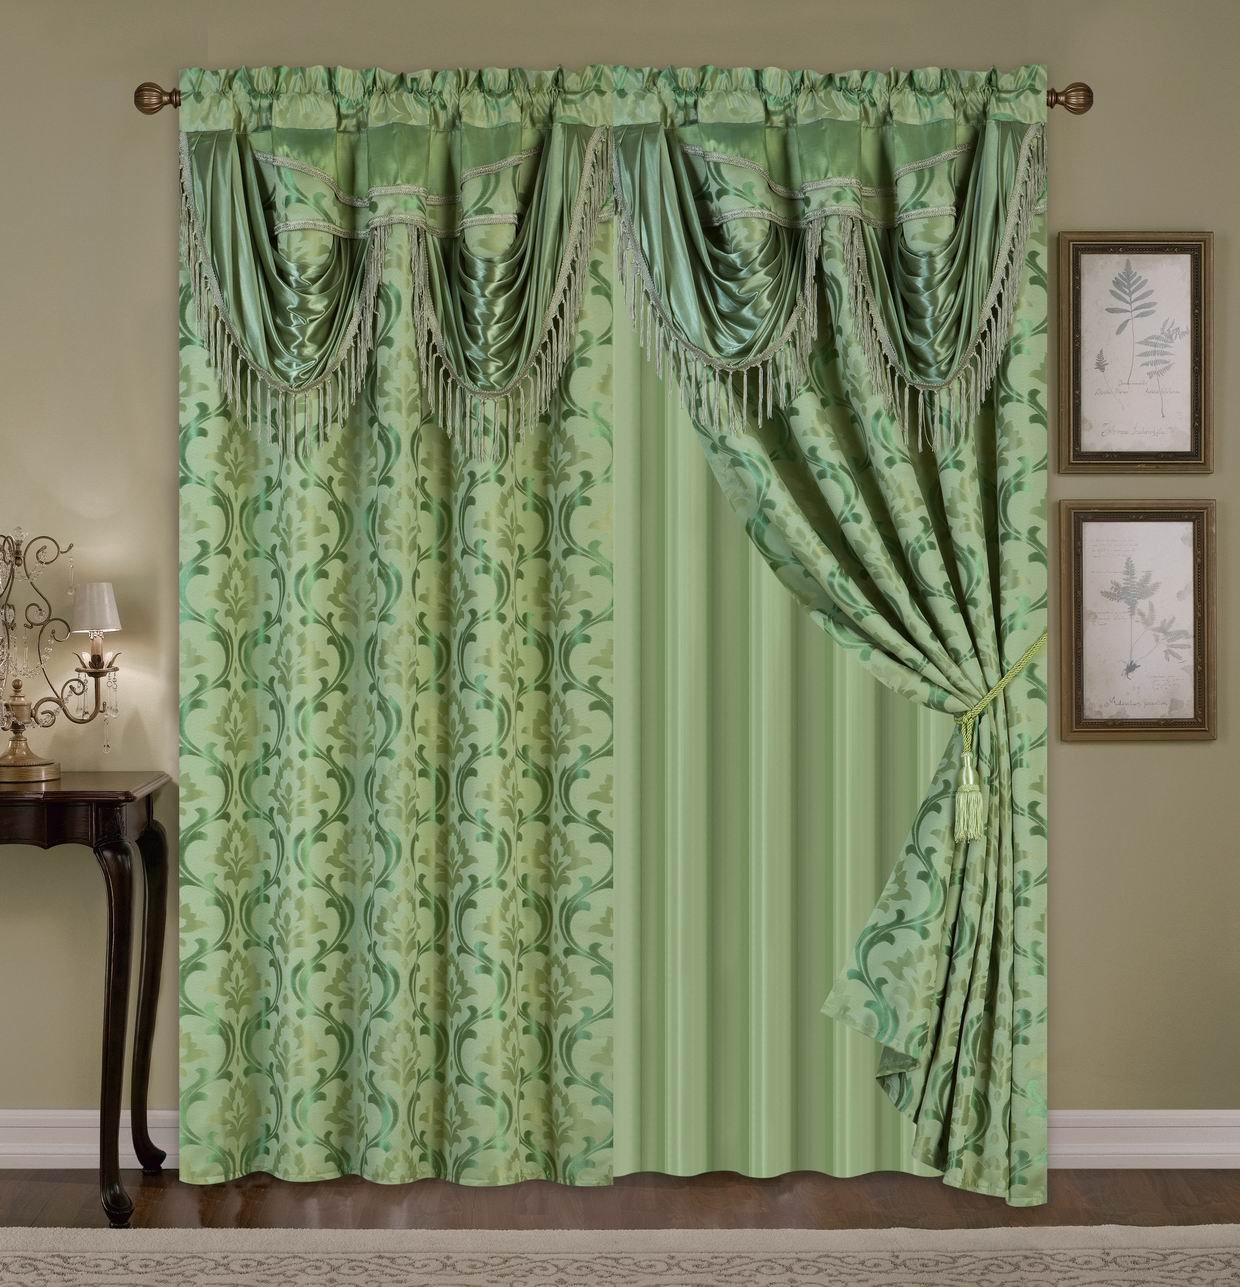 All American Collection New 4 Piece Elegant Drape Set with Attached Valance and Sheer with 2 Tie Backs Included Sage